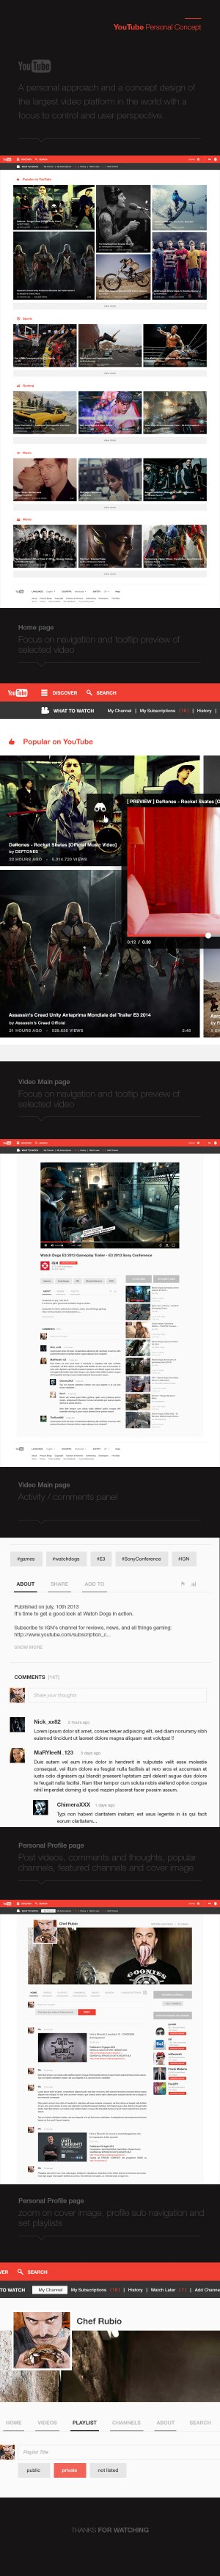 YouTube Redesign Concept :: A personal approach and a concept design of the largest video platfo ...